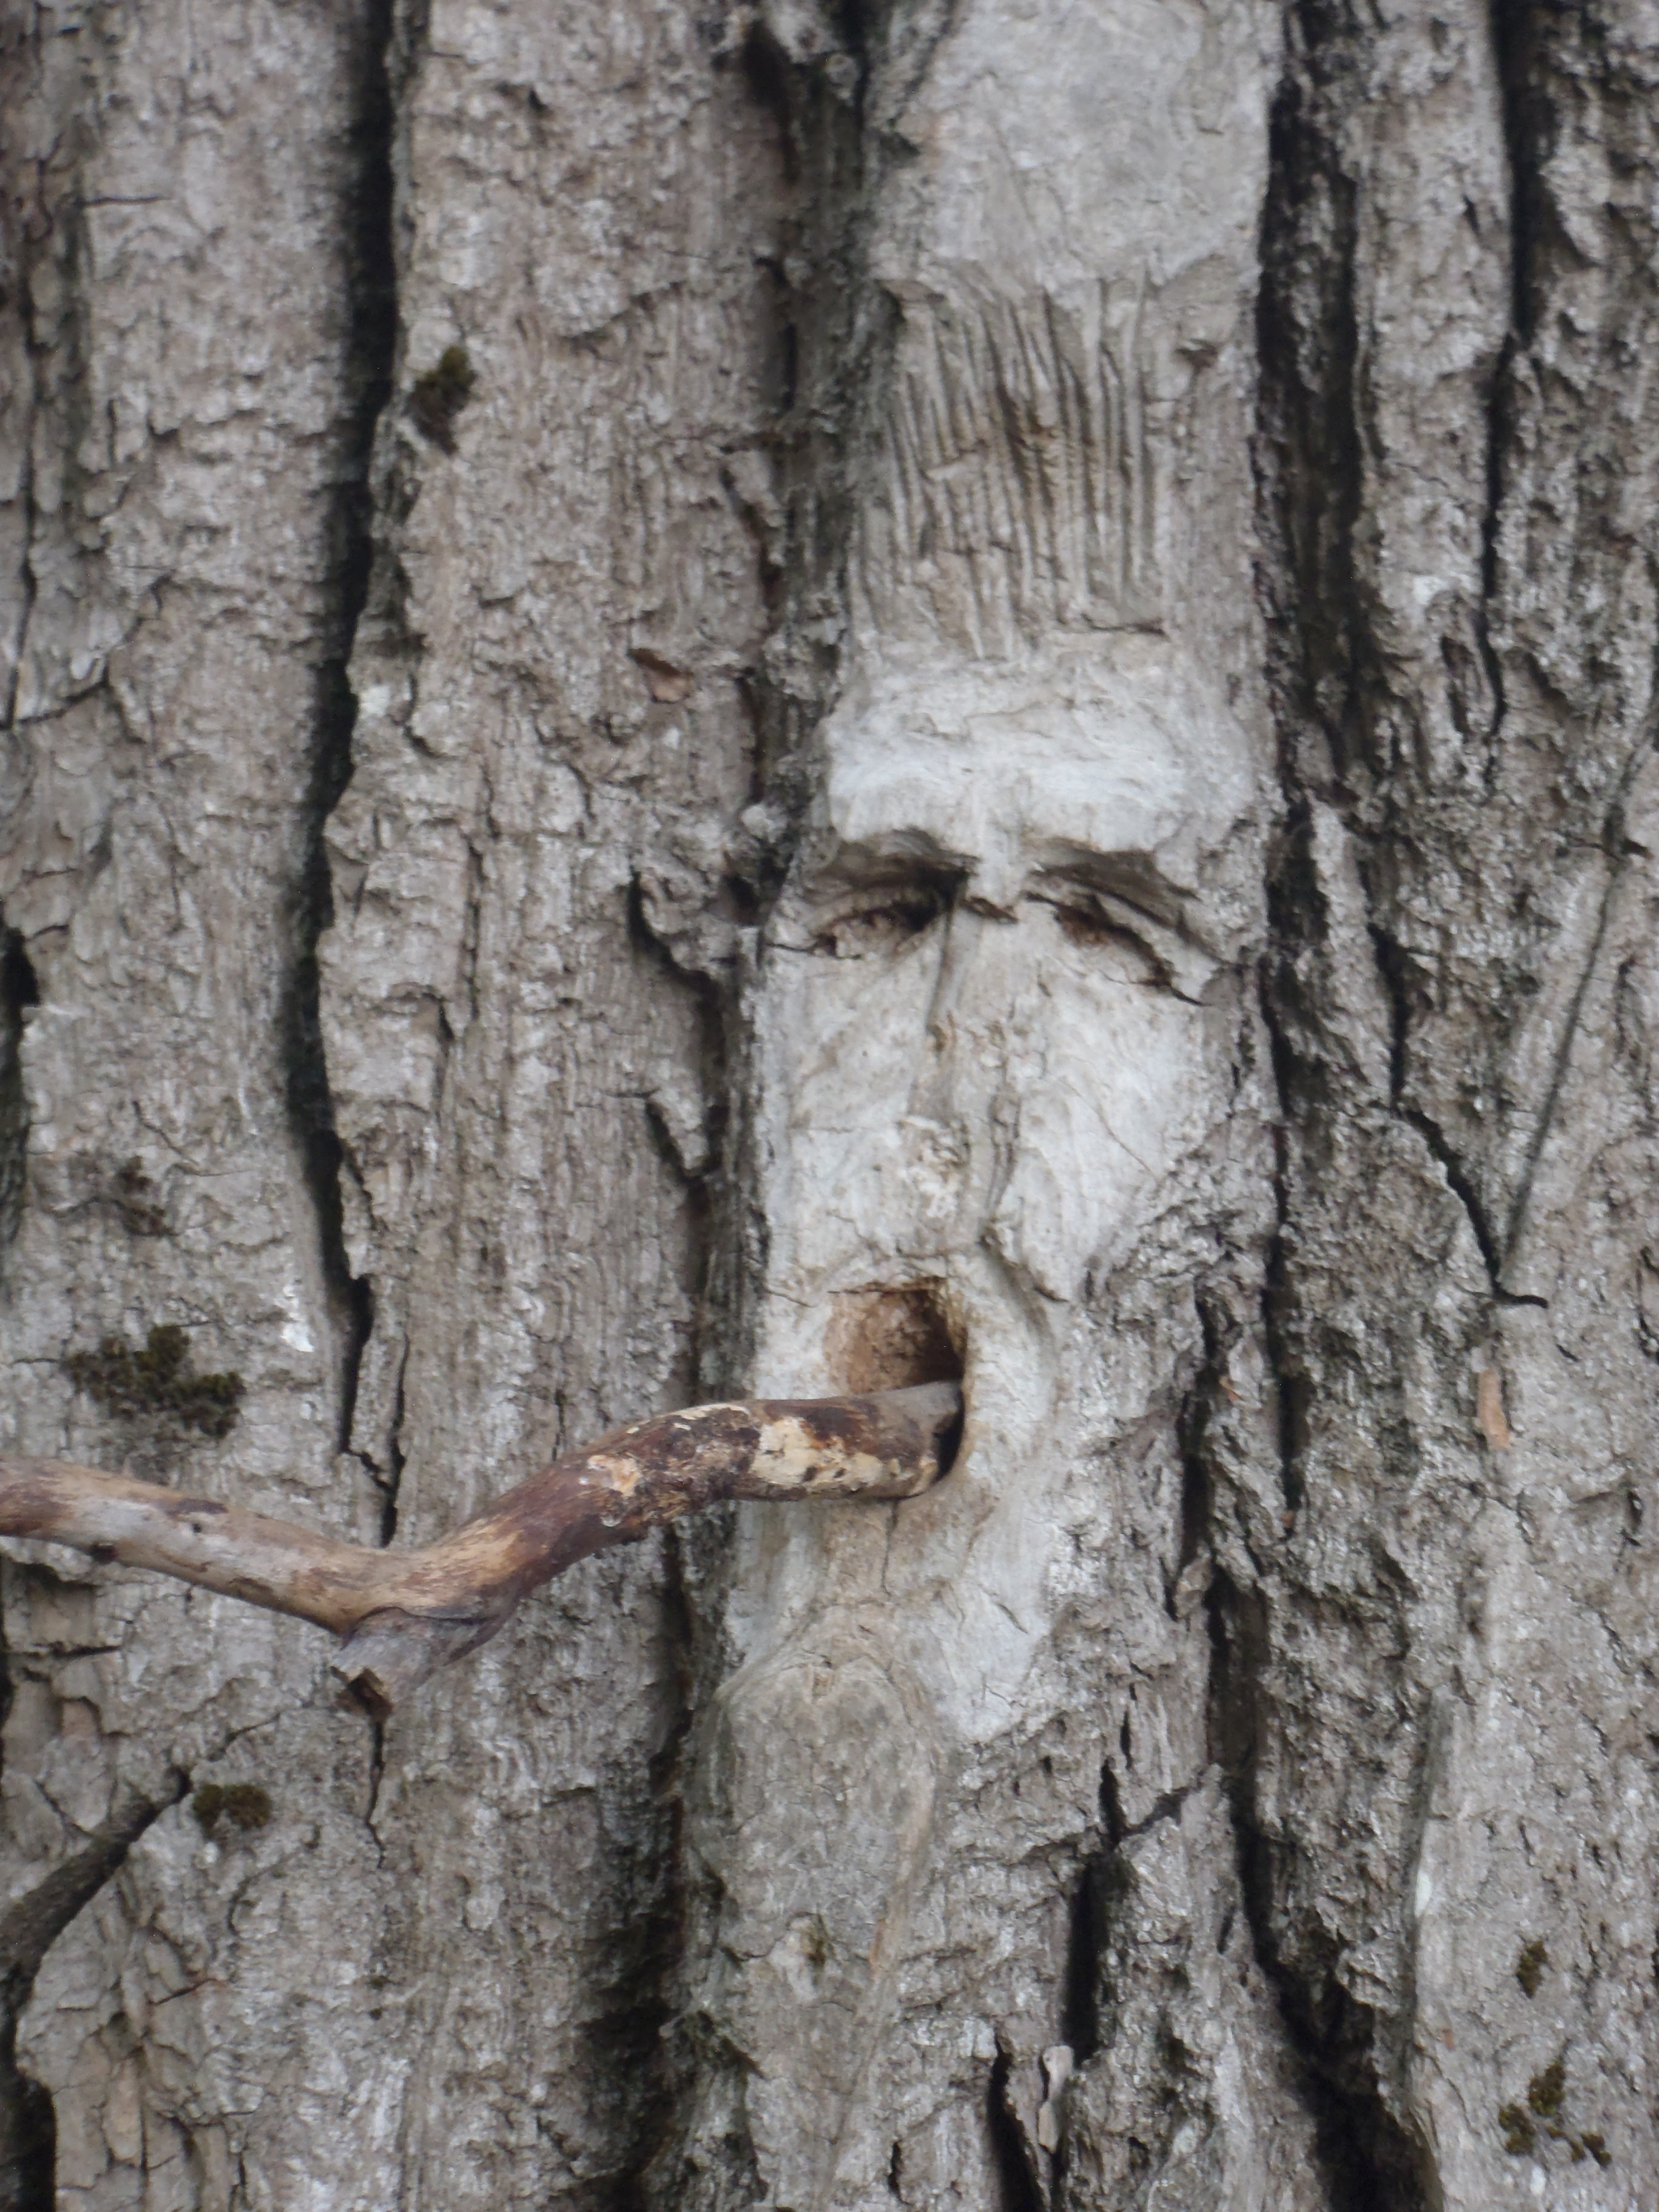 Carvings in cottonwood trees, Ferry Island, Terrace, BC